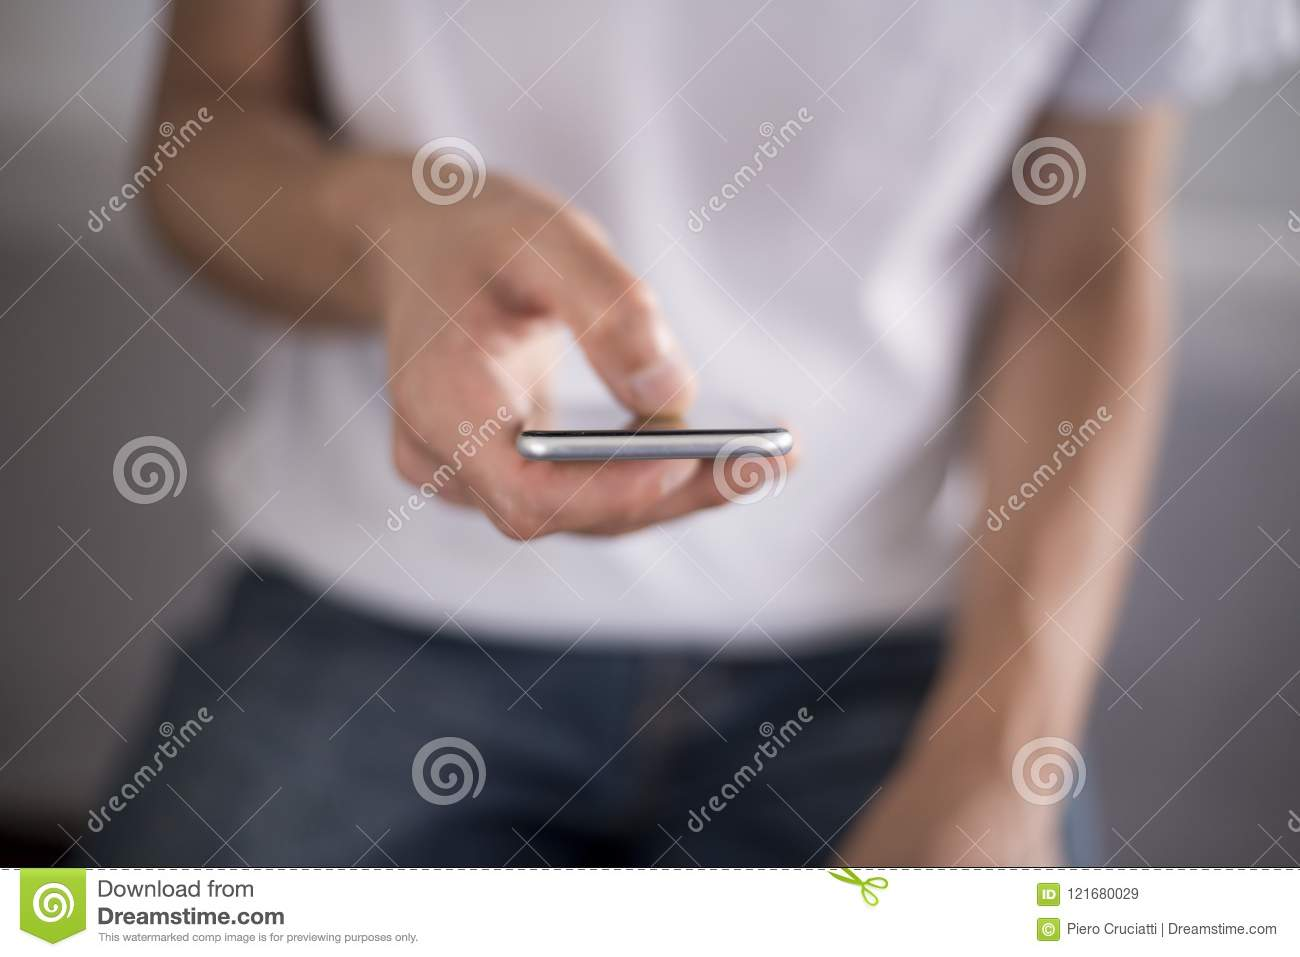 5636a1ae73dea Young man using apps on a touchscreen smartphone - Hands close-up, focus on  phone - Blue jeans and white t-shirt - Concept for using technology,  shopping ...